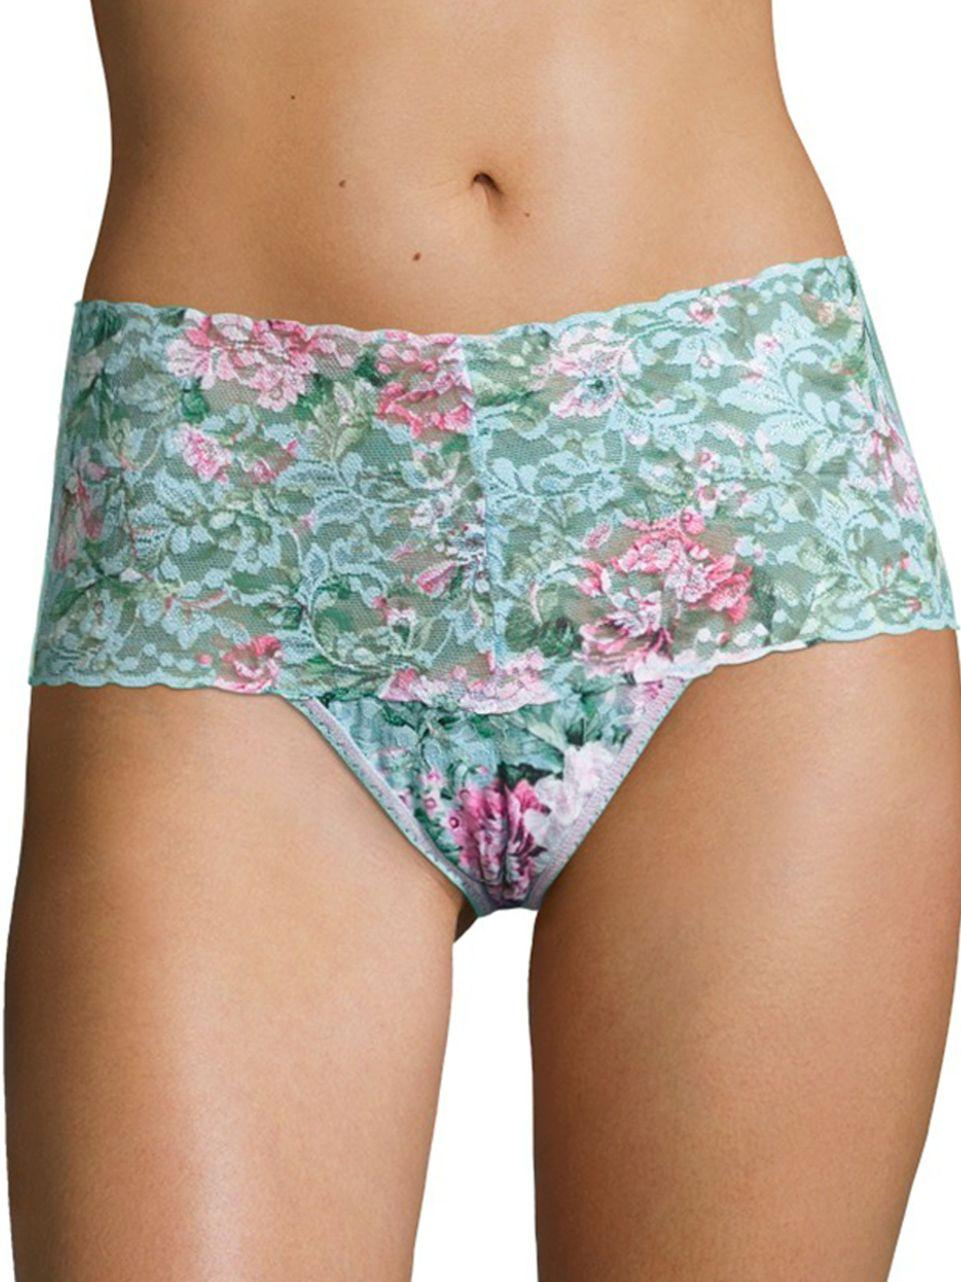 Free shipping and returns on panties for women at realmmaster-radio.ga Shop by Panty Item, Material, Buy & Save and more. Shop for bikini, high-cut, boyshort and more panties from the best brands.